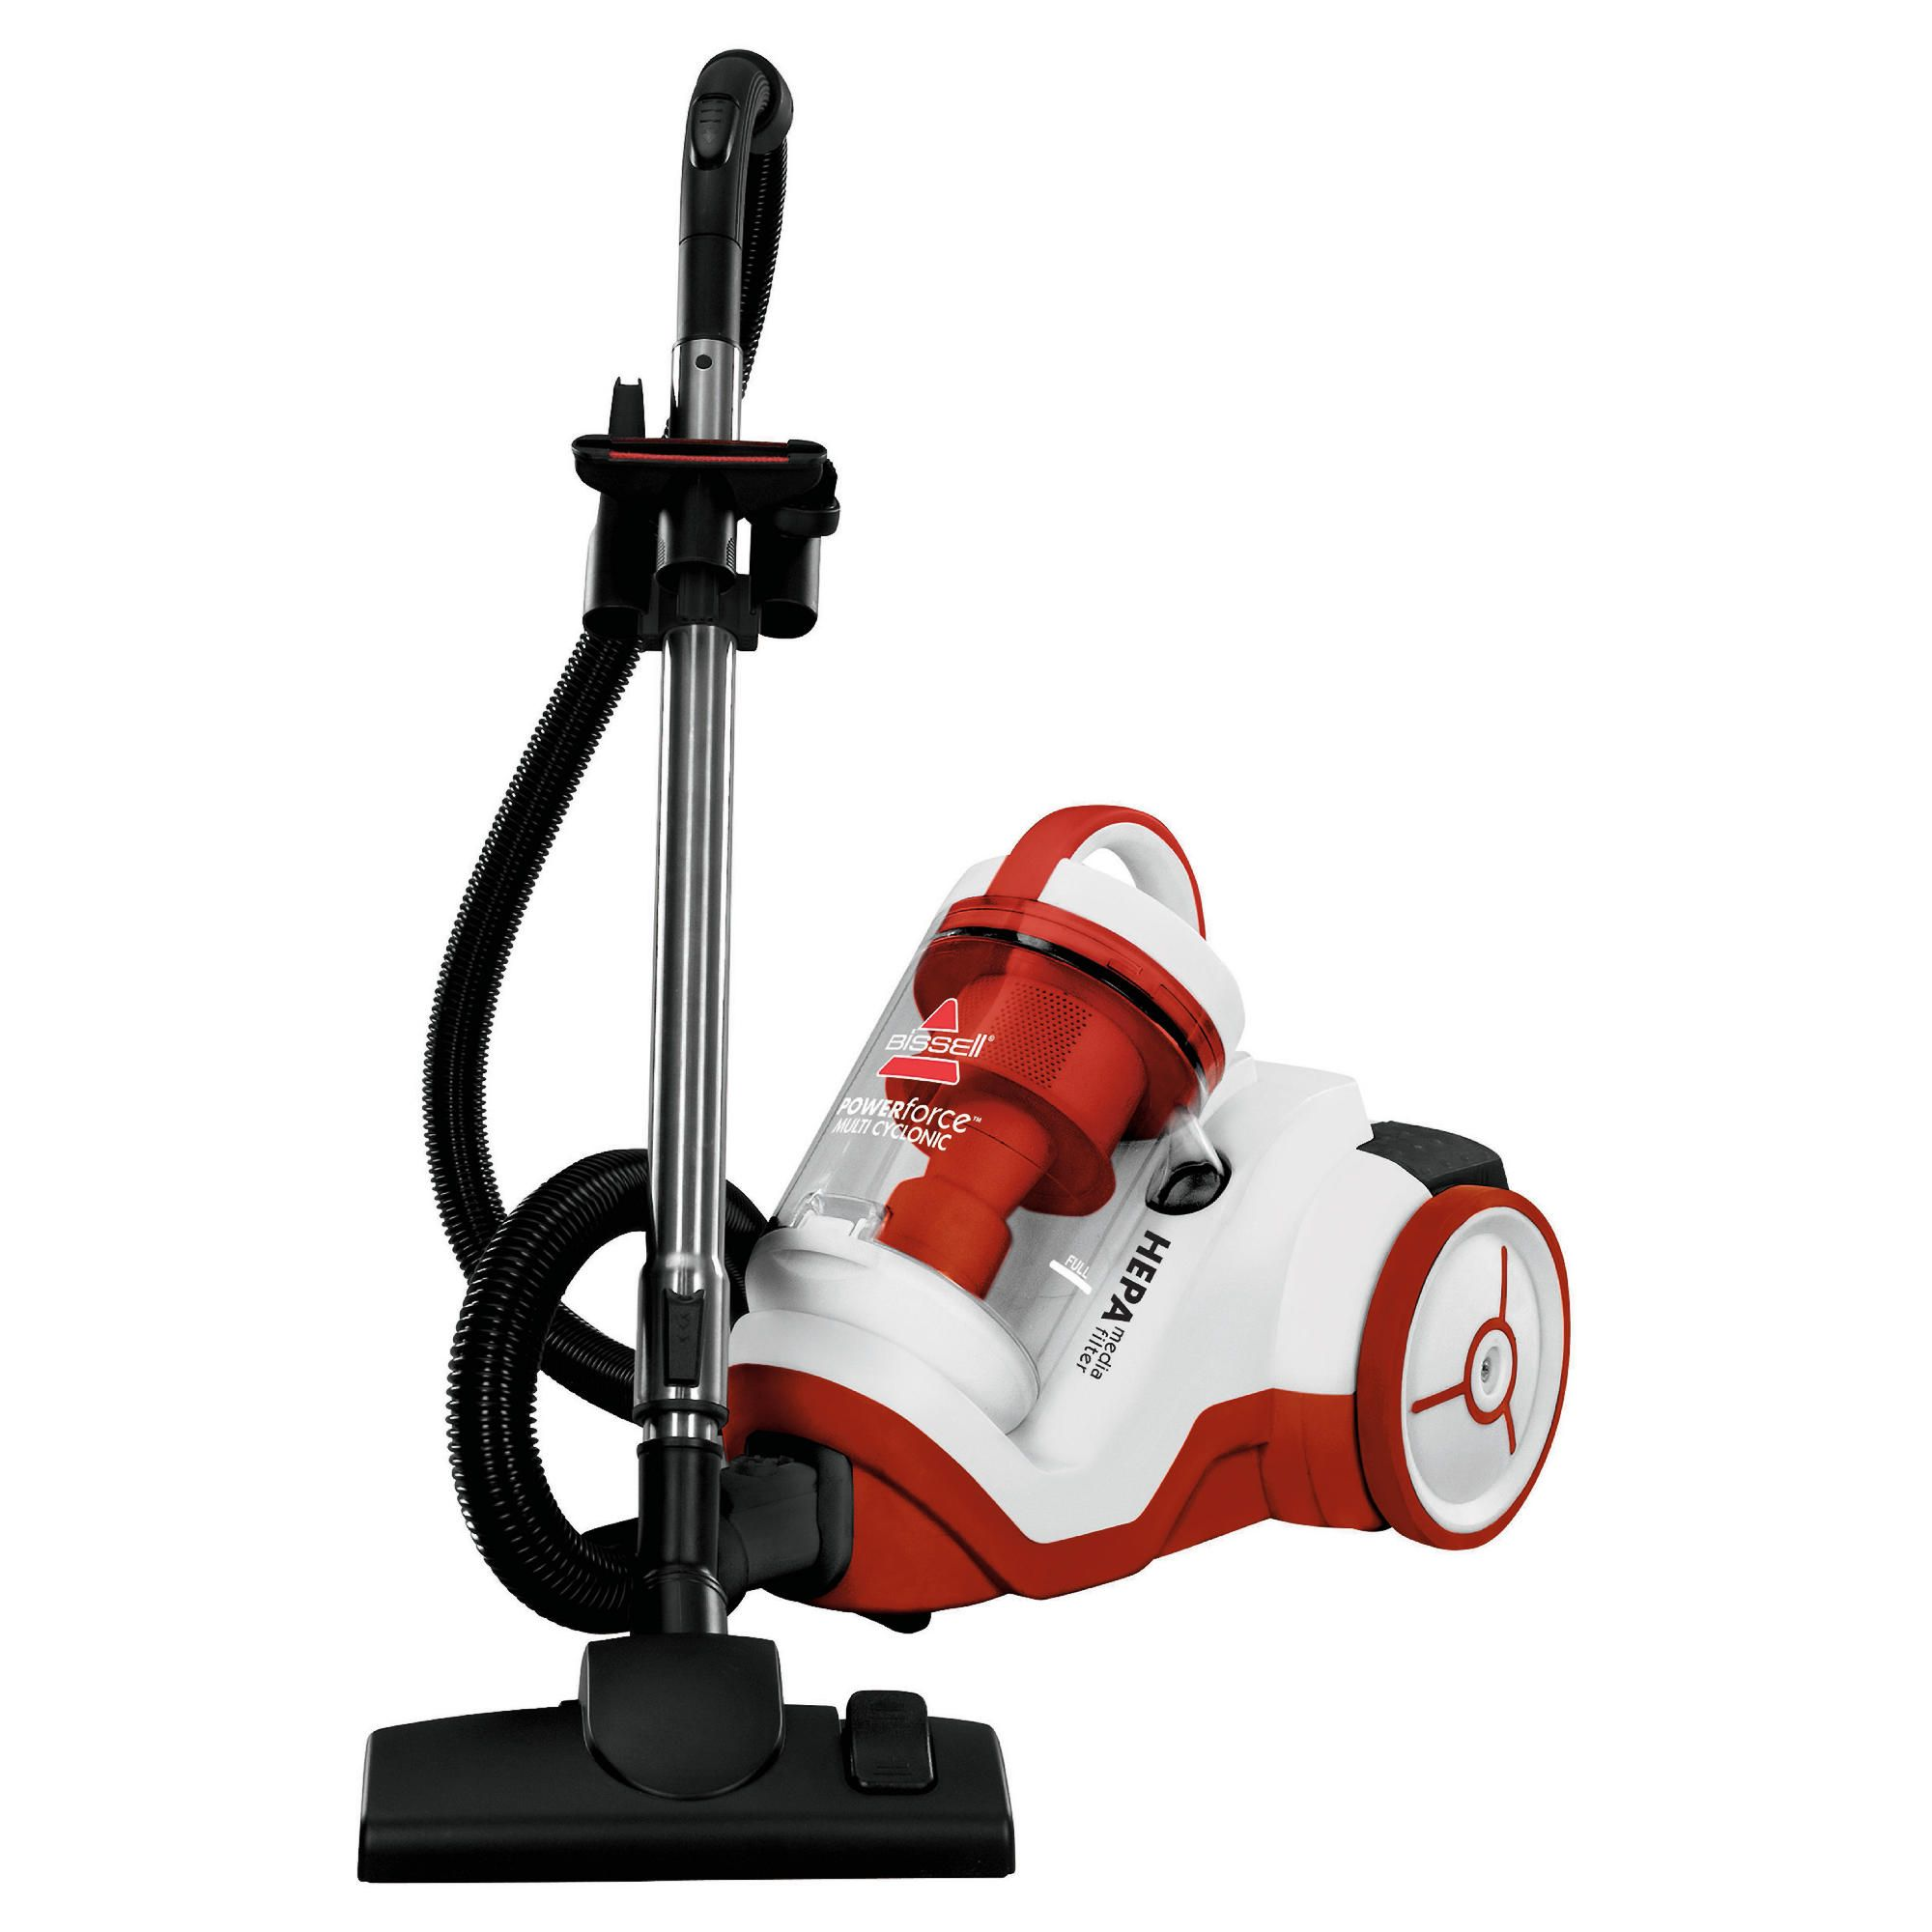 Bagless Vacuum Cleaner Philips Fc8474 Smeg 608l Side By